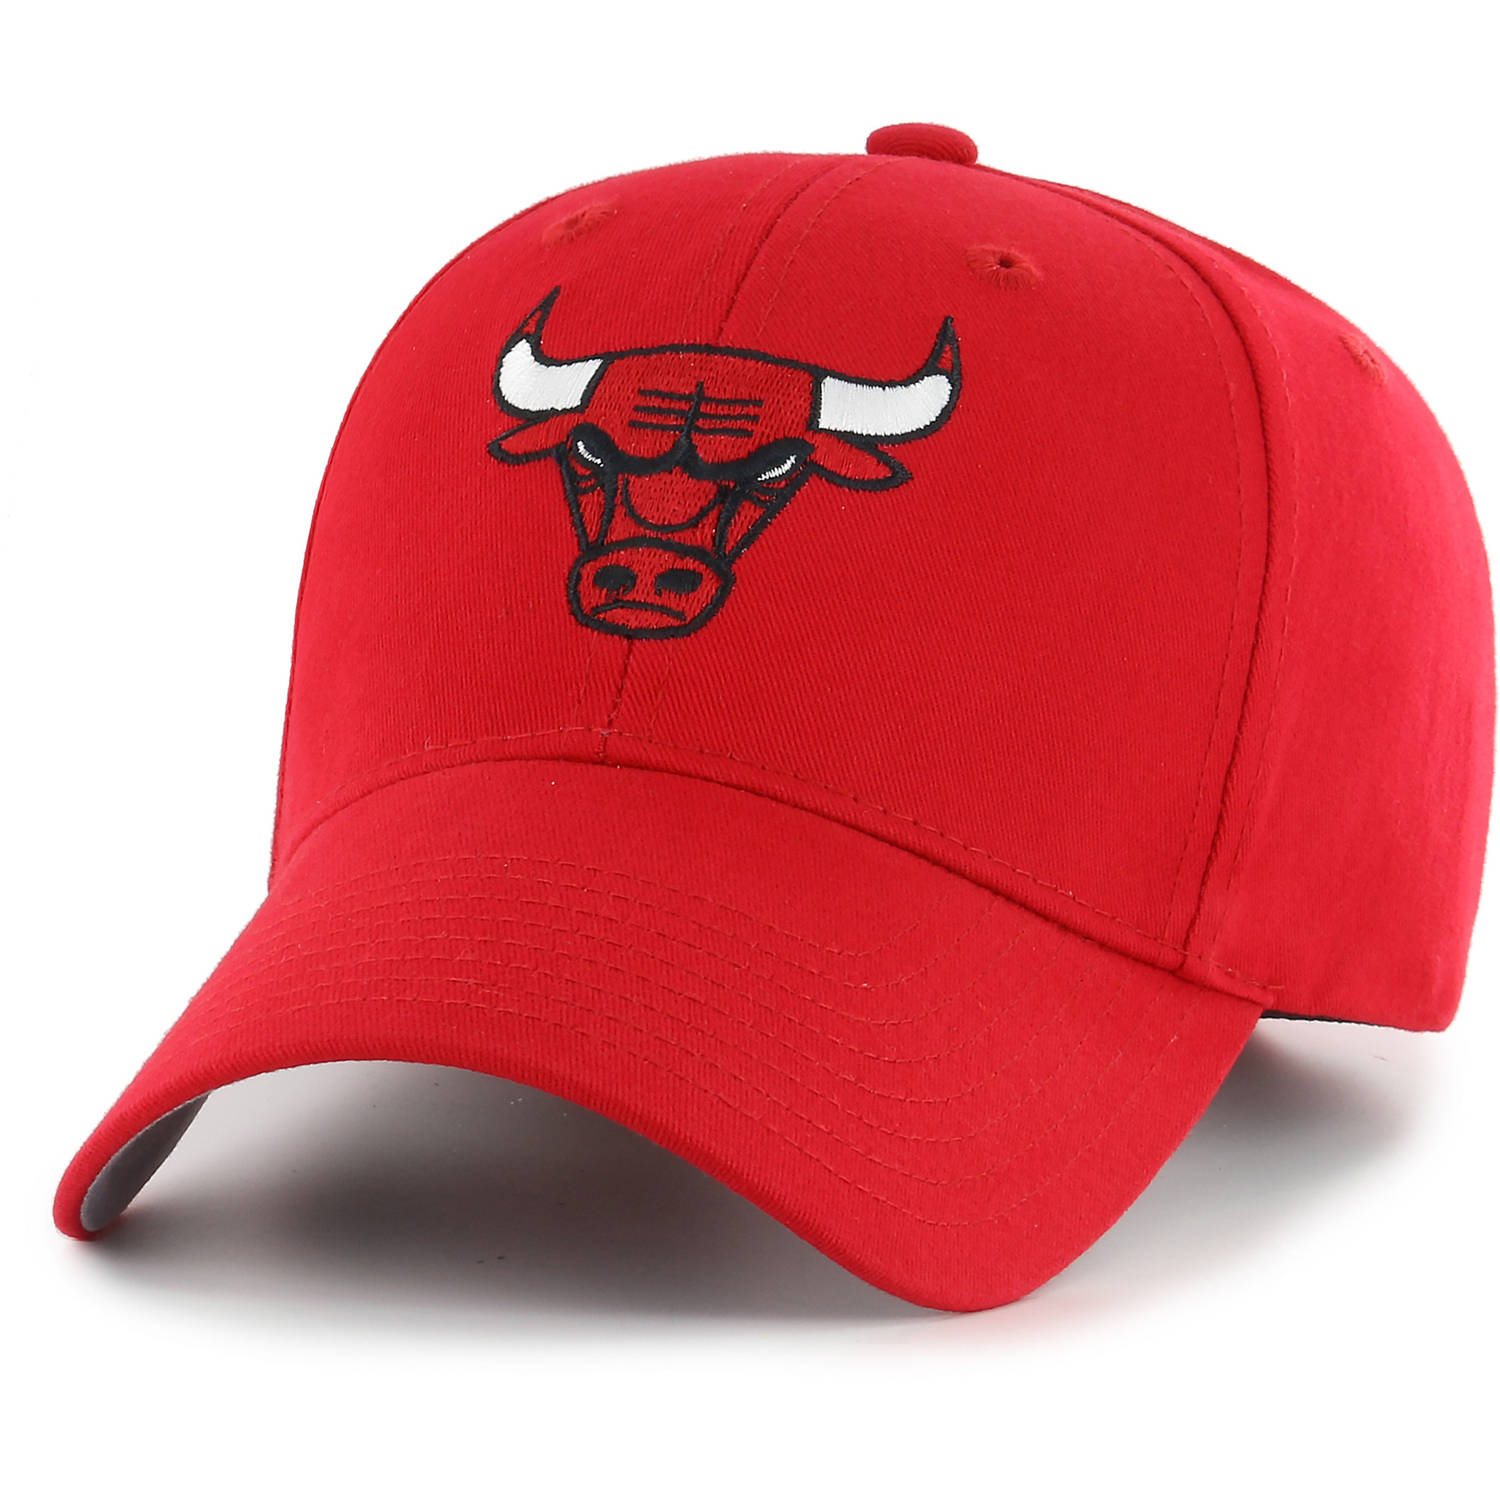 NBA Chicago Bulls Basic Cap/Hat - Fan Favorite